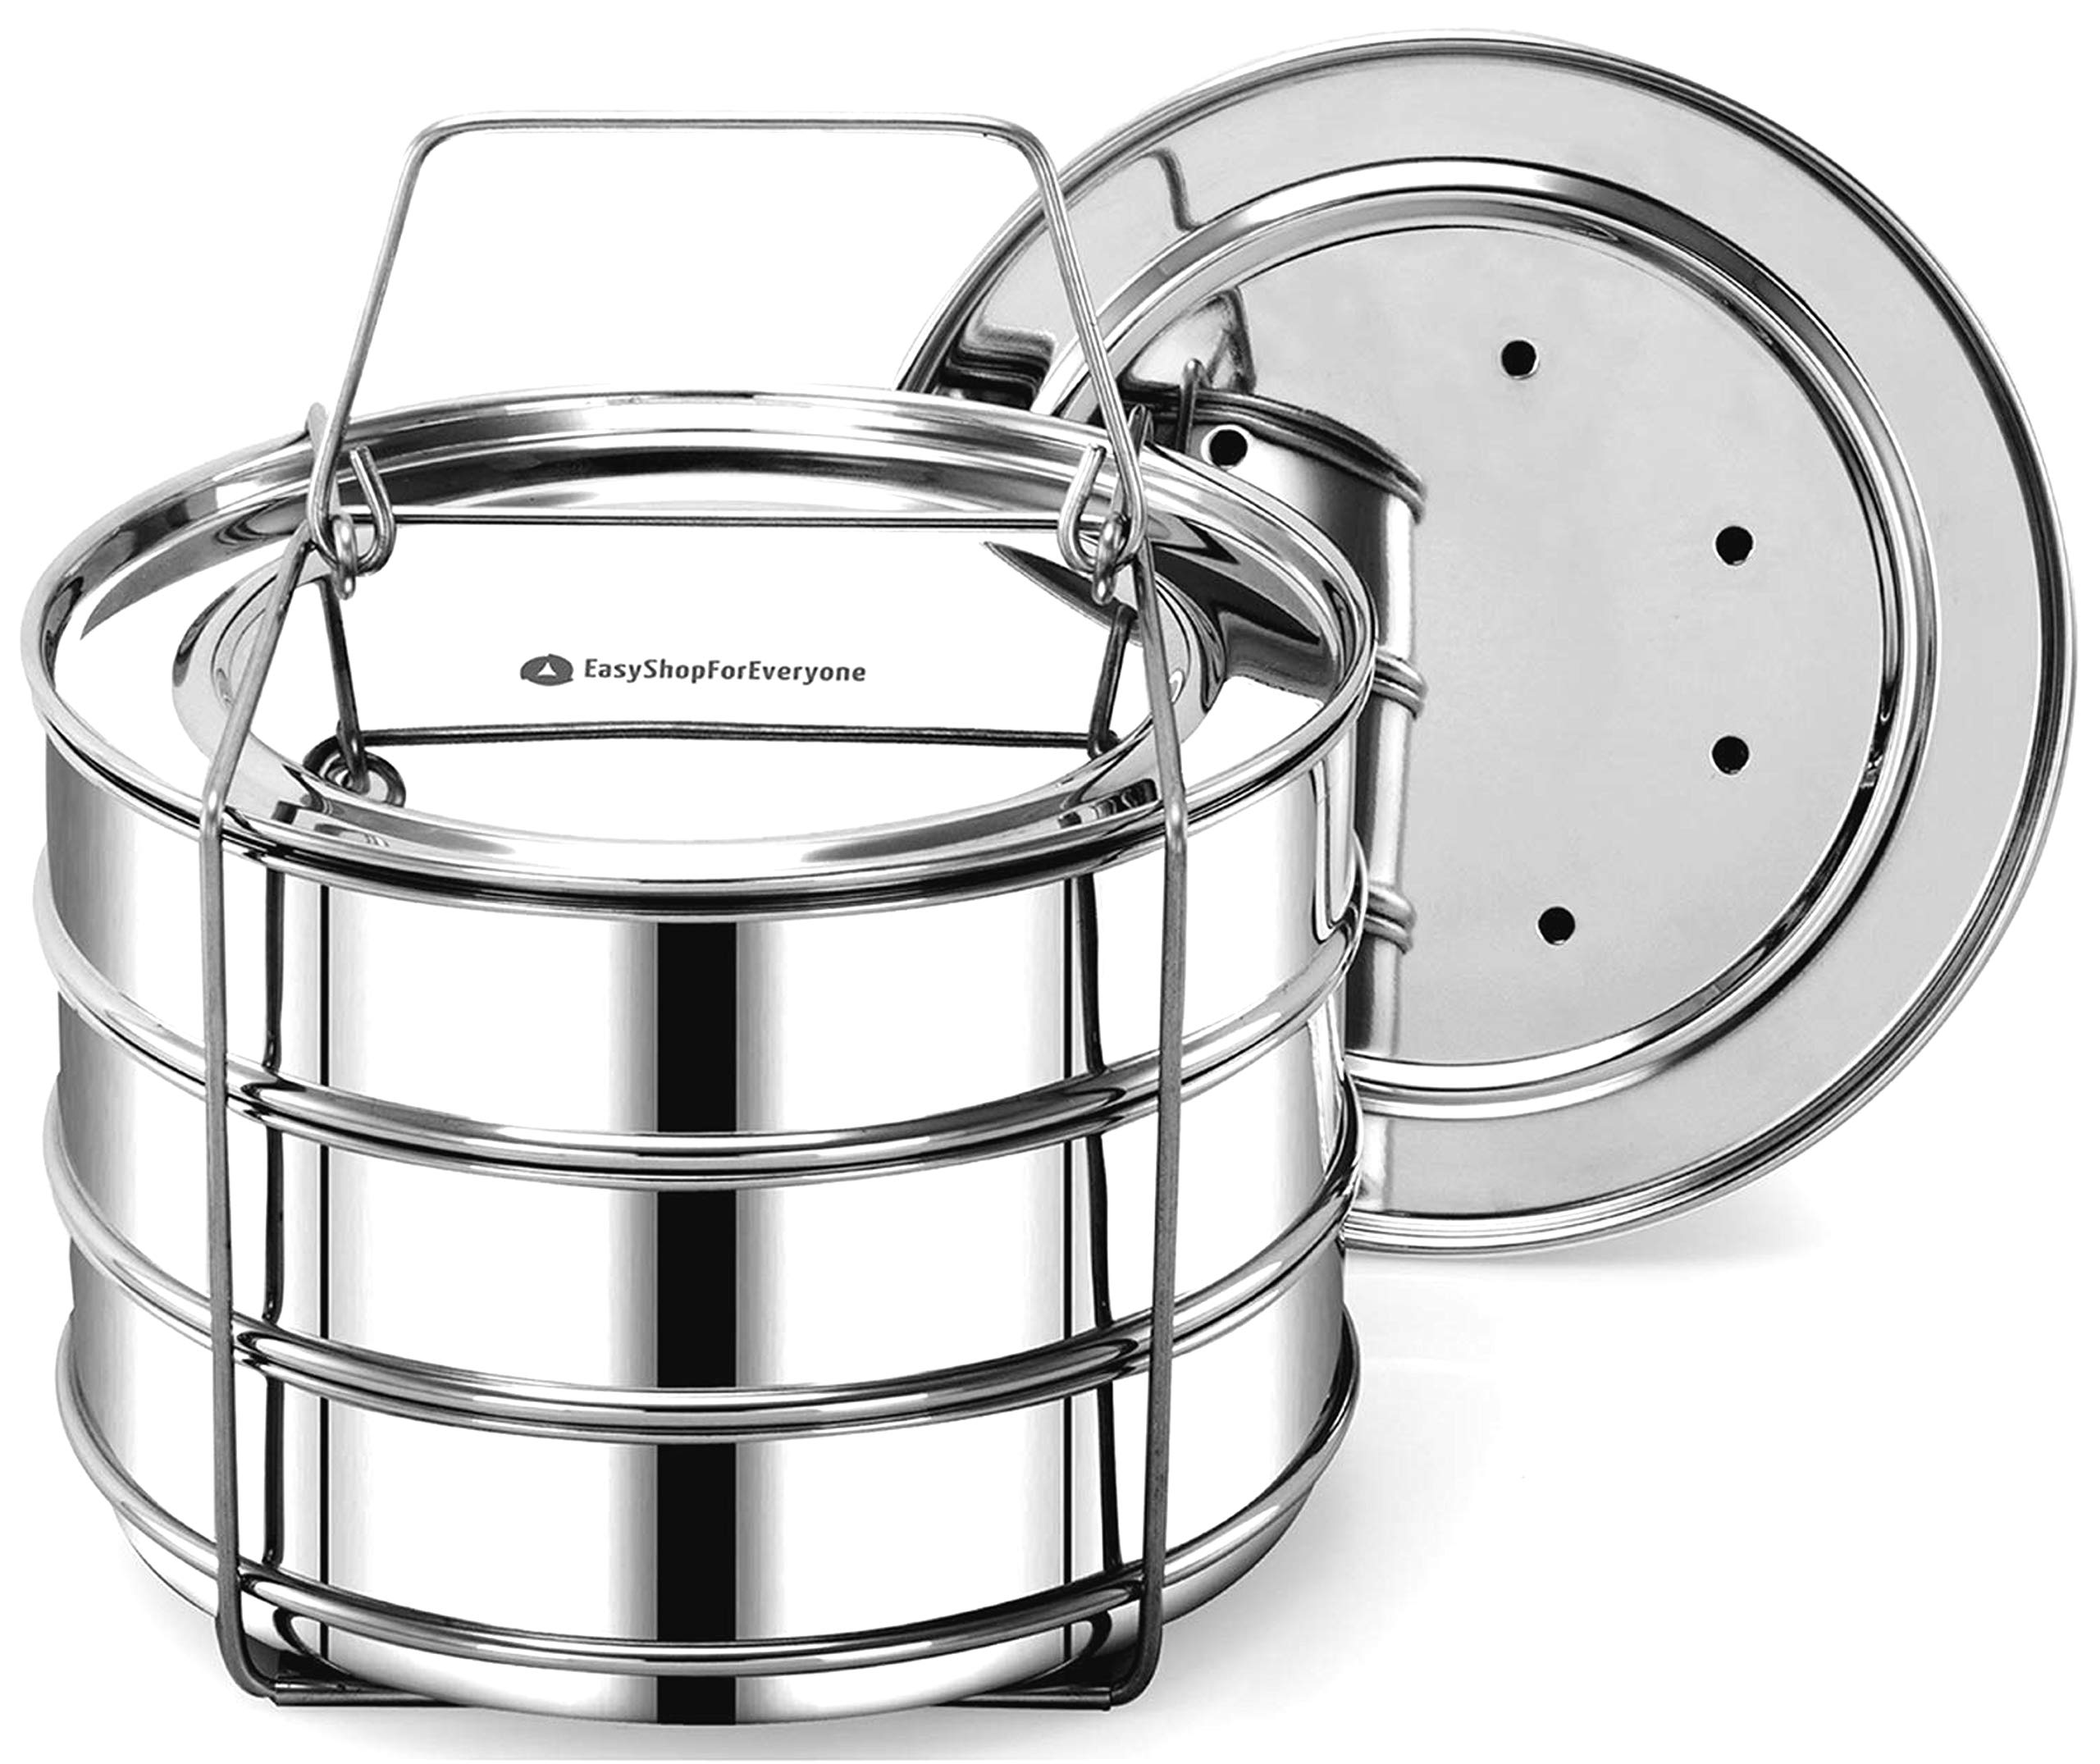 EasyShopForEveryone Stainless Accessories Stackable Pans, Pot in Pot Steel Insert, 6 qt Pressure Cooker Accessories for Instant Baking, Lasagna Pans, Food Steamer - Cook 3 Dishes at a time